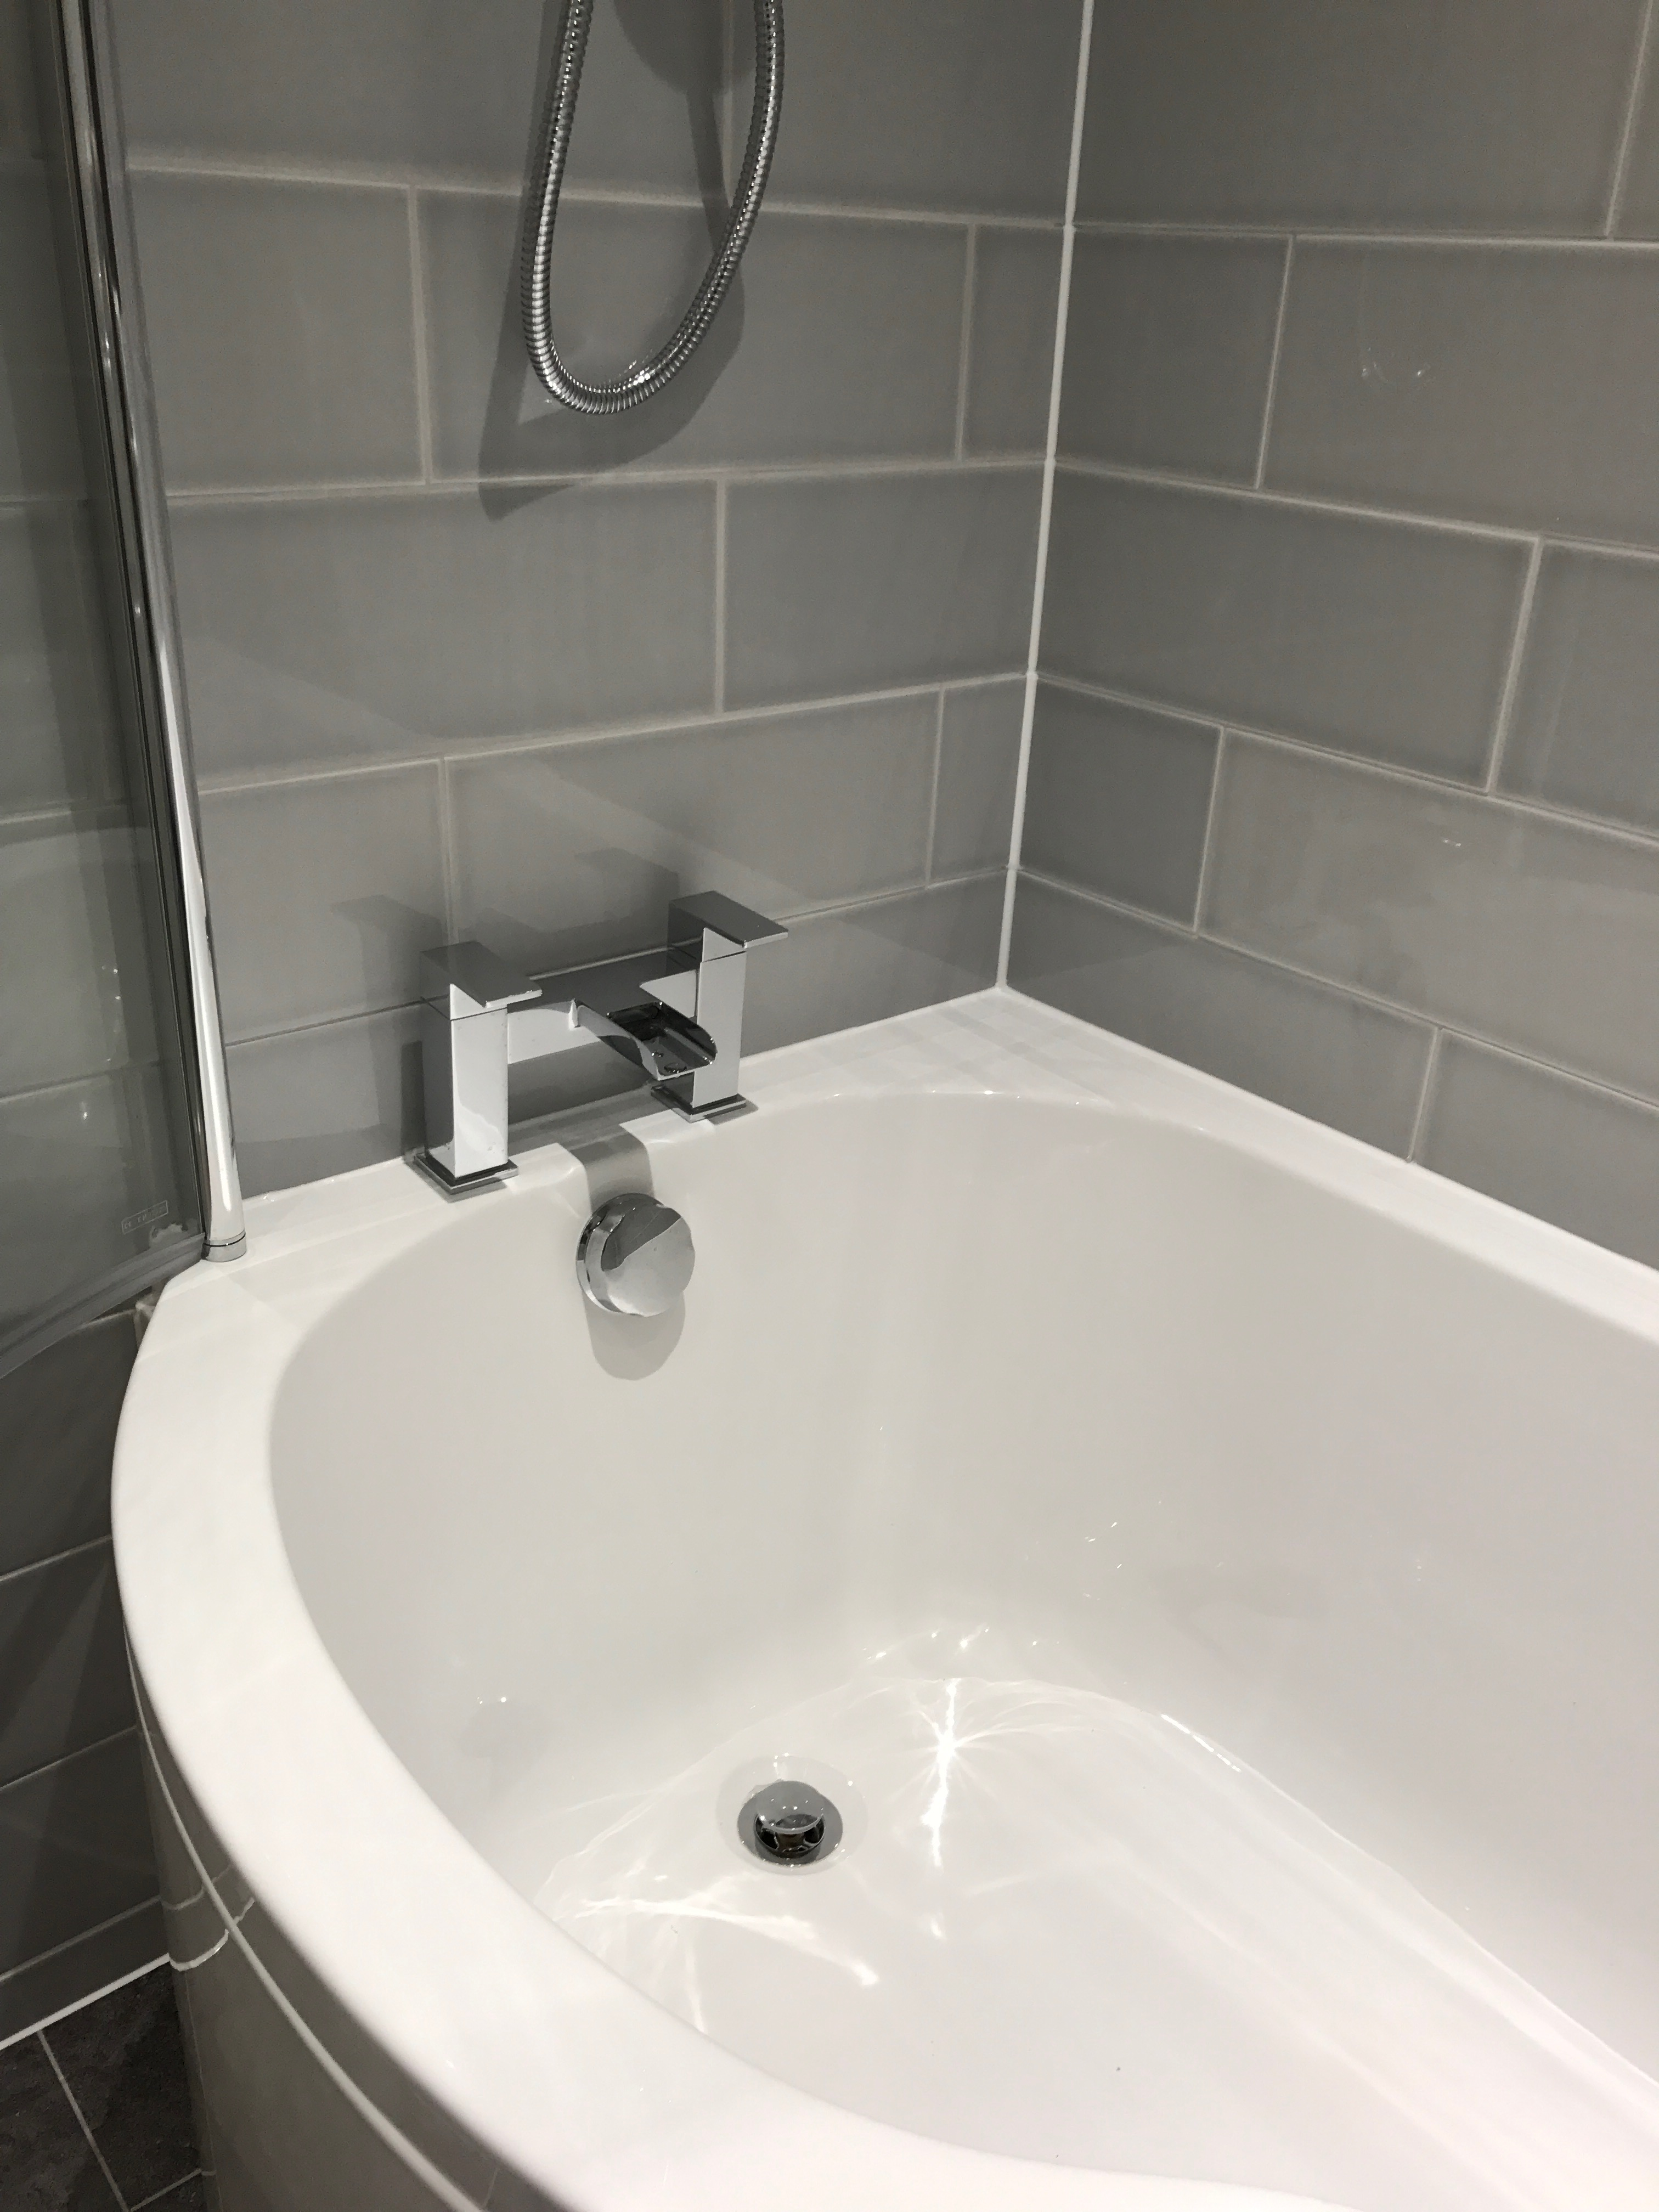 Bathroom Project Bedfordshire - TNM Property Services0605